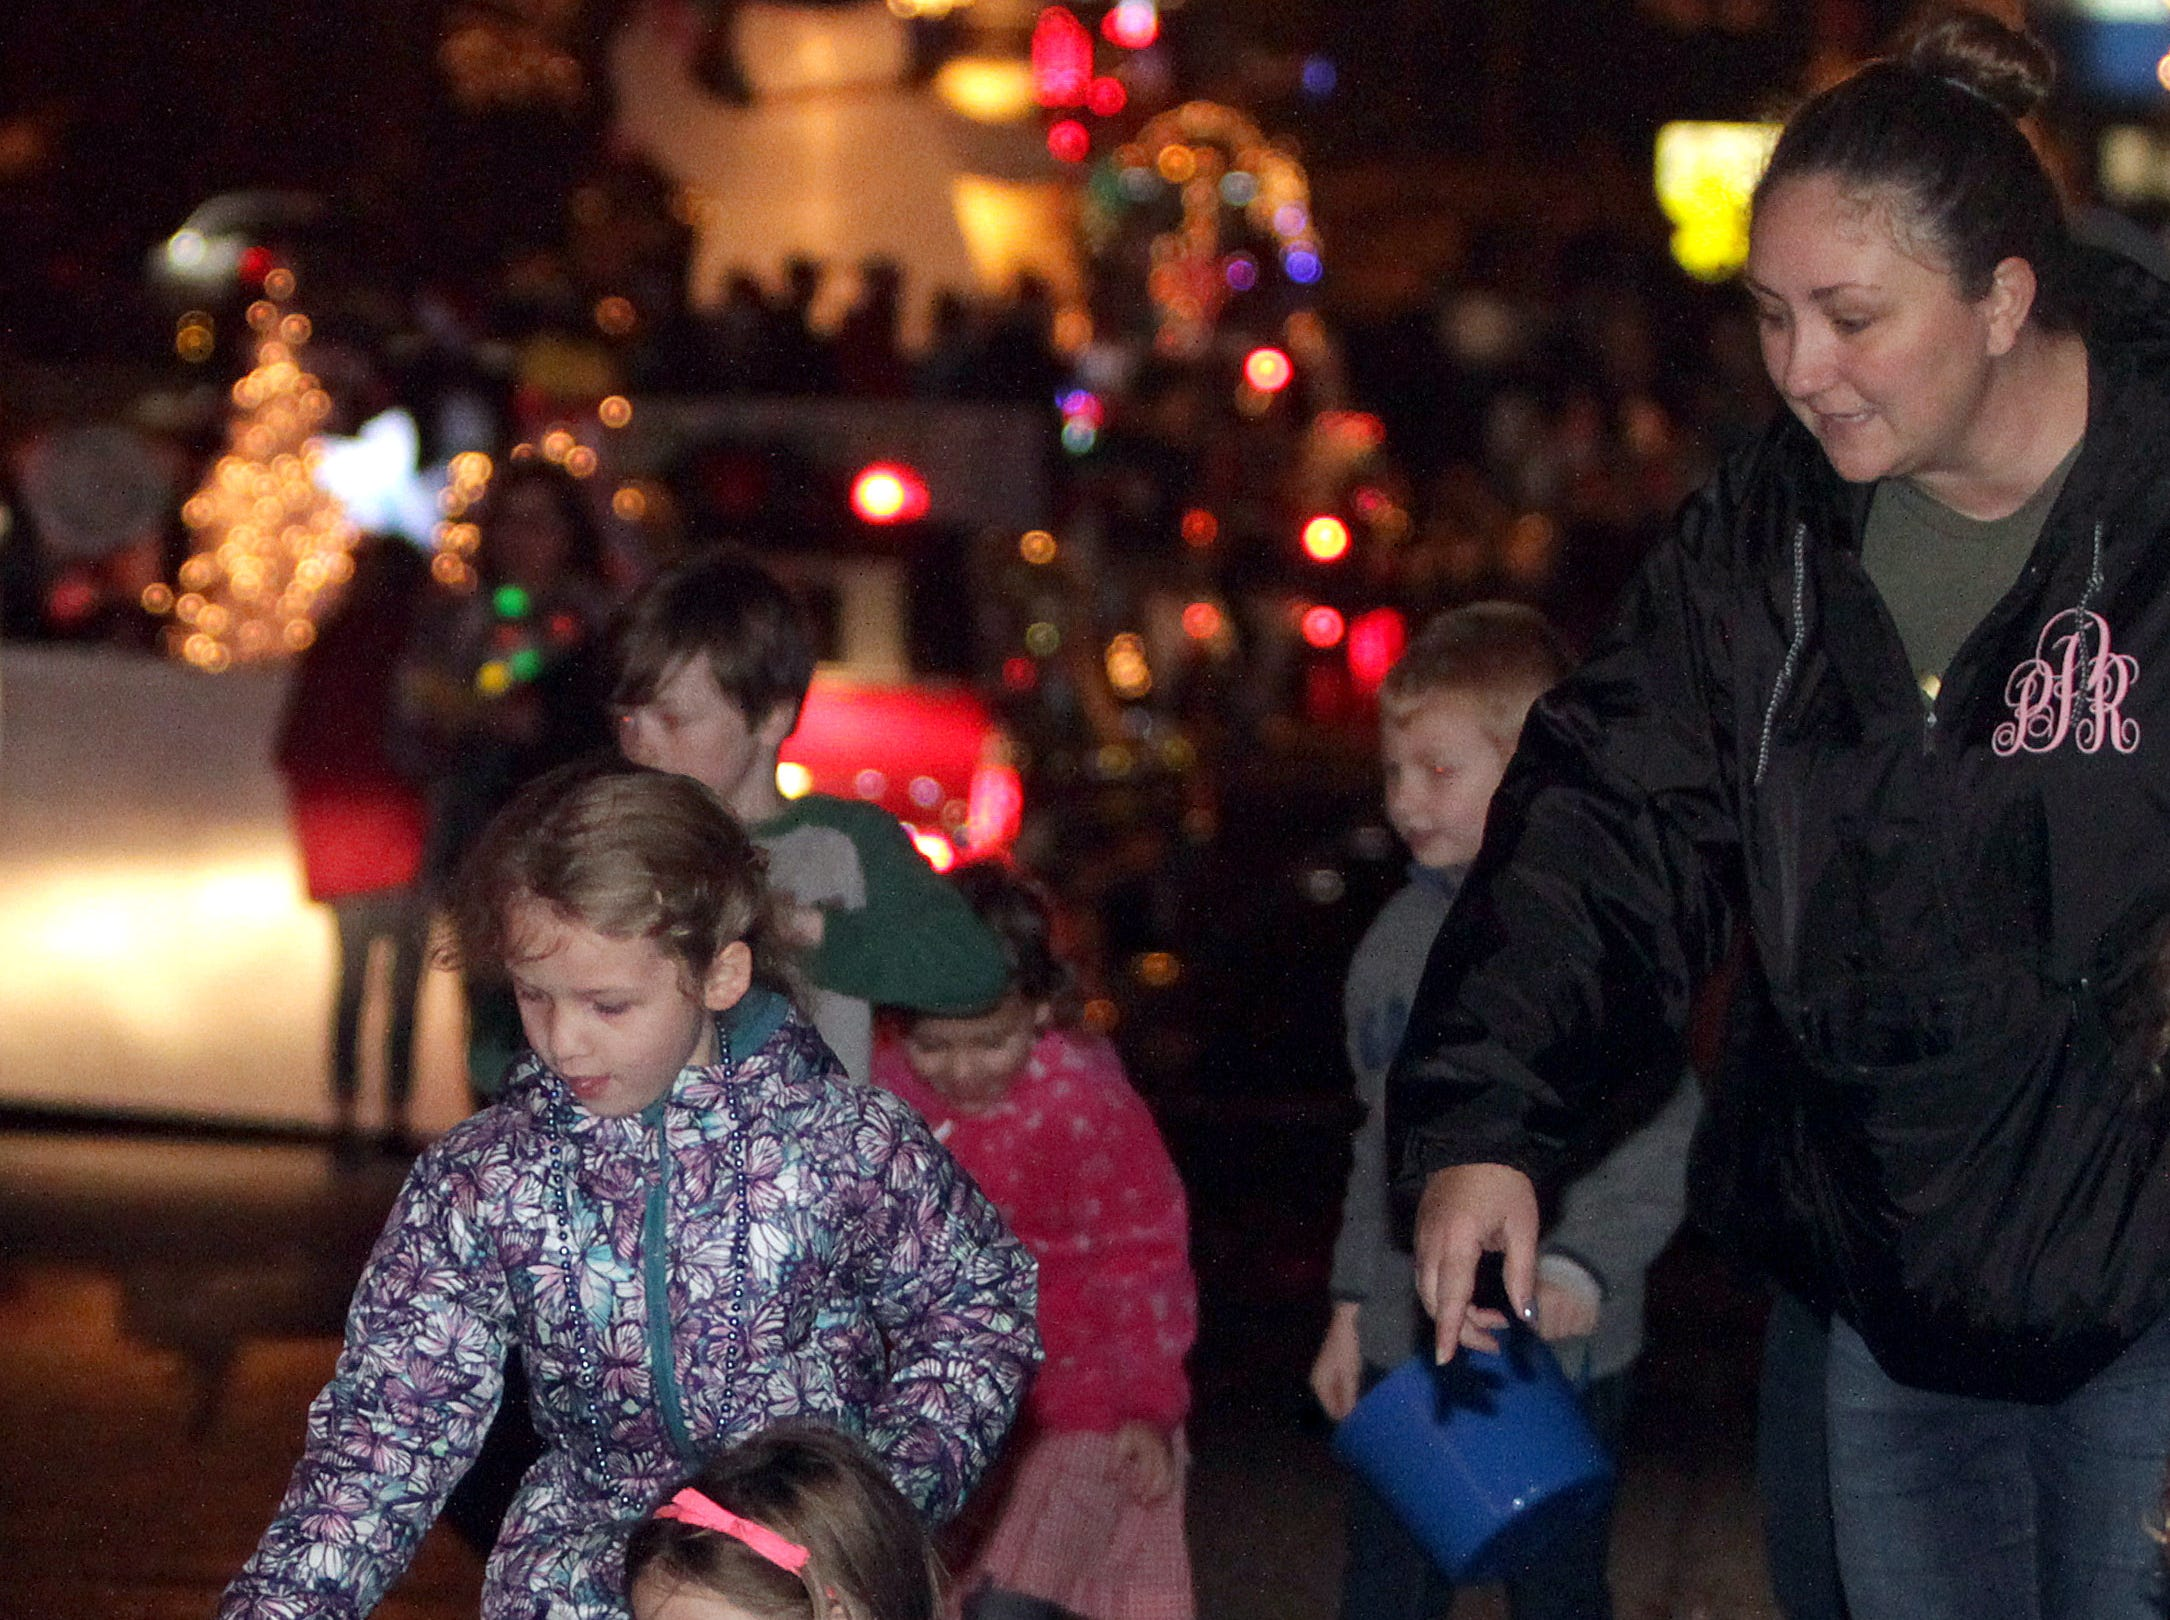 Kids gather candy throw at the Ashland City xmas parade on Saturday, December 1, 2018.